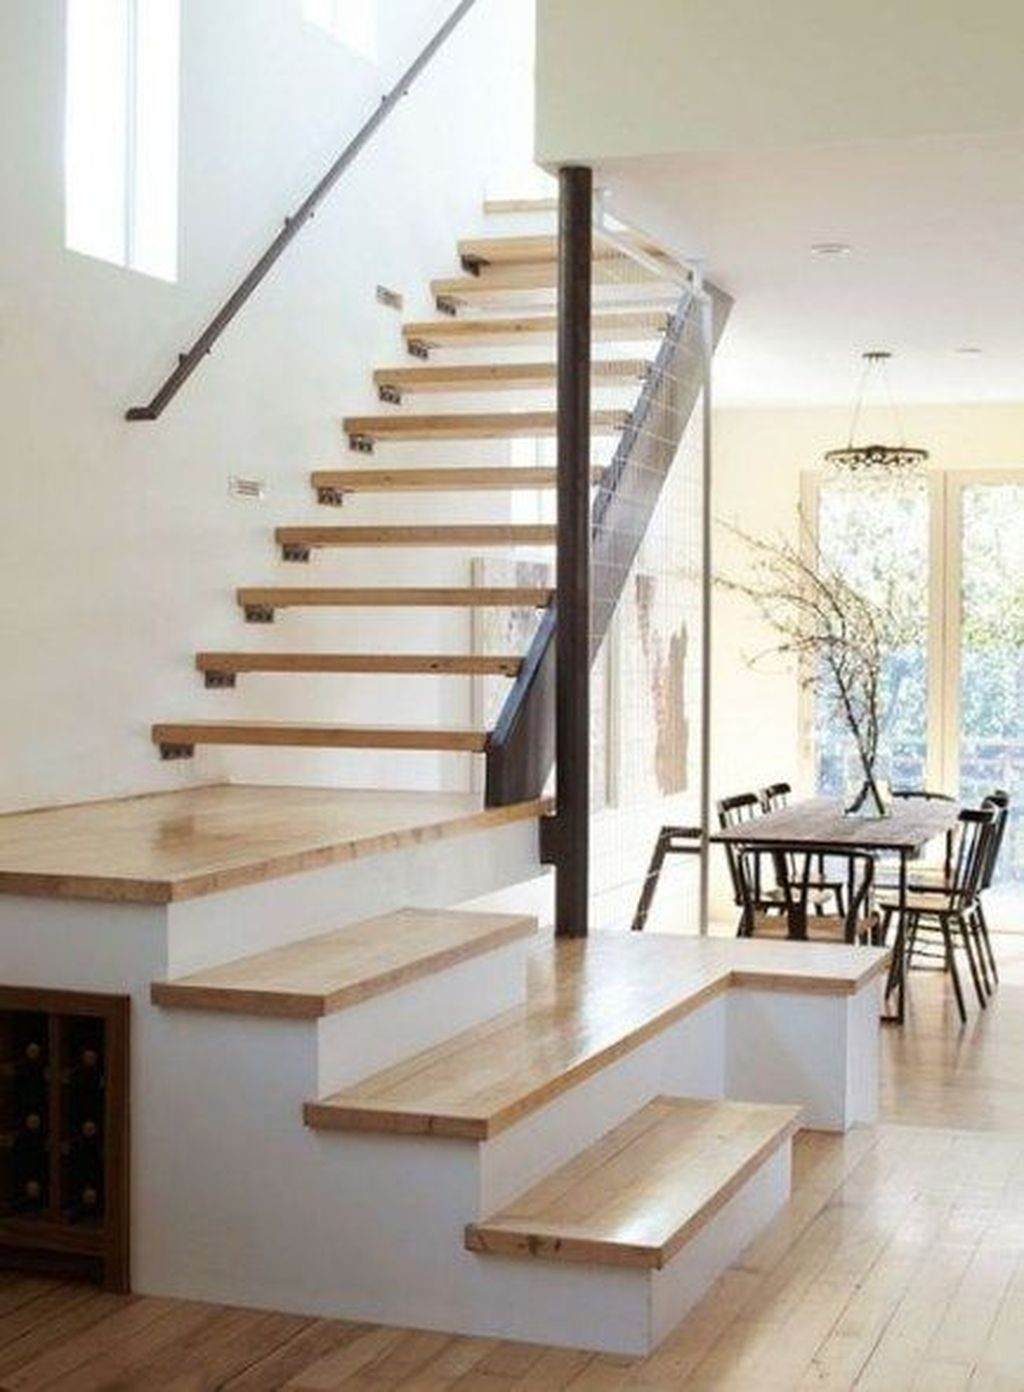 Incredible Stairs Design Ideas For The Attic To Try13